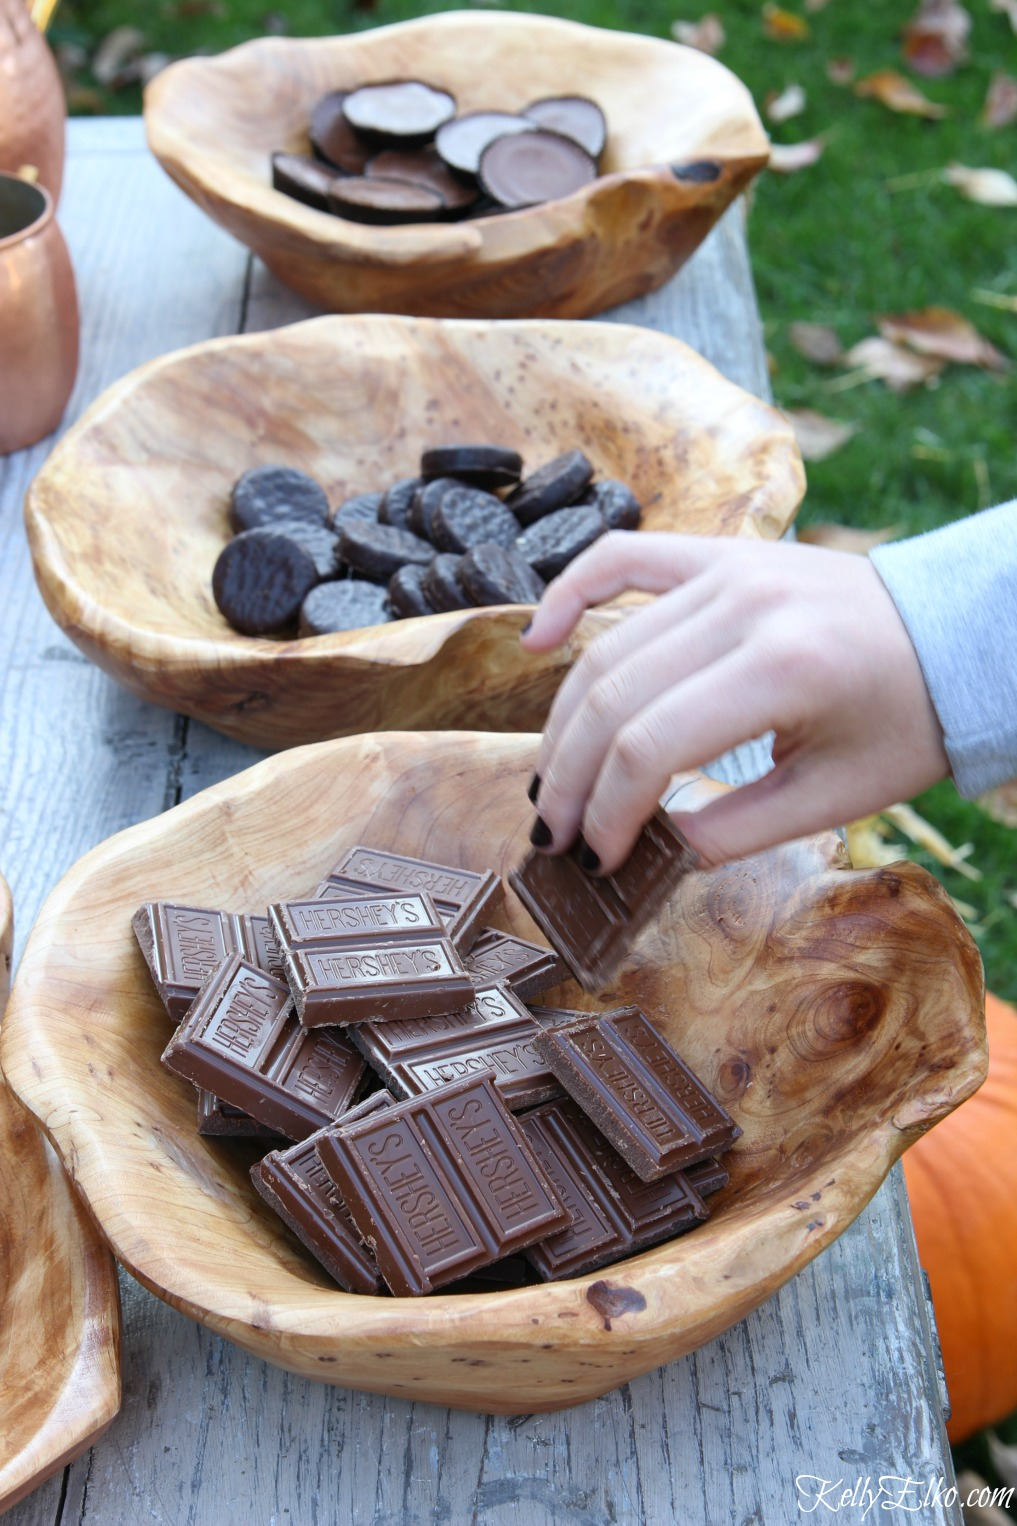 S'mores bar - use a mix of candy in wood serving bowls kellyelko.com